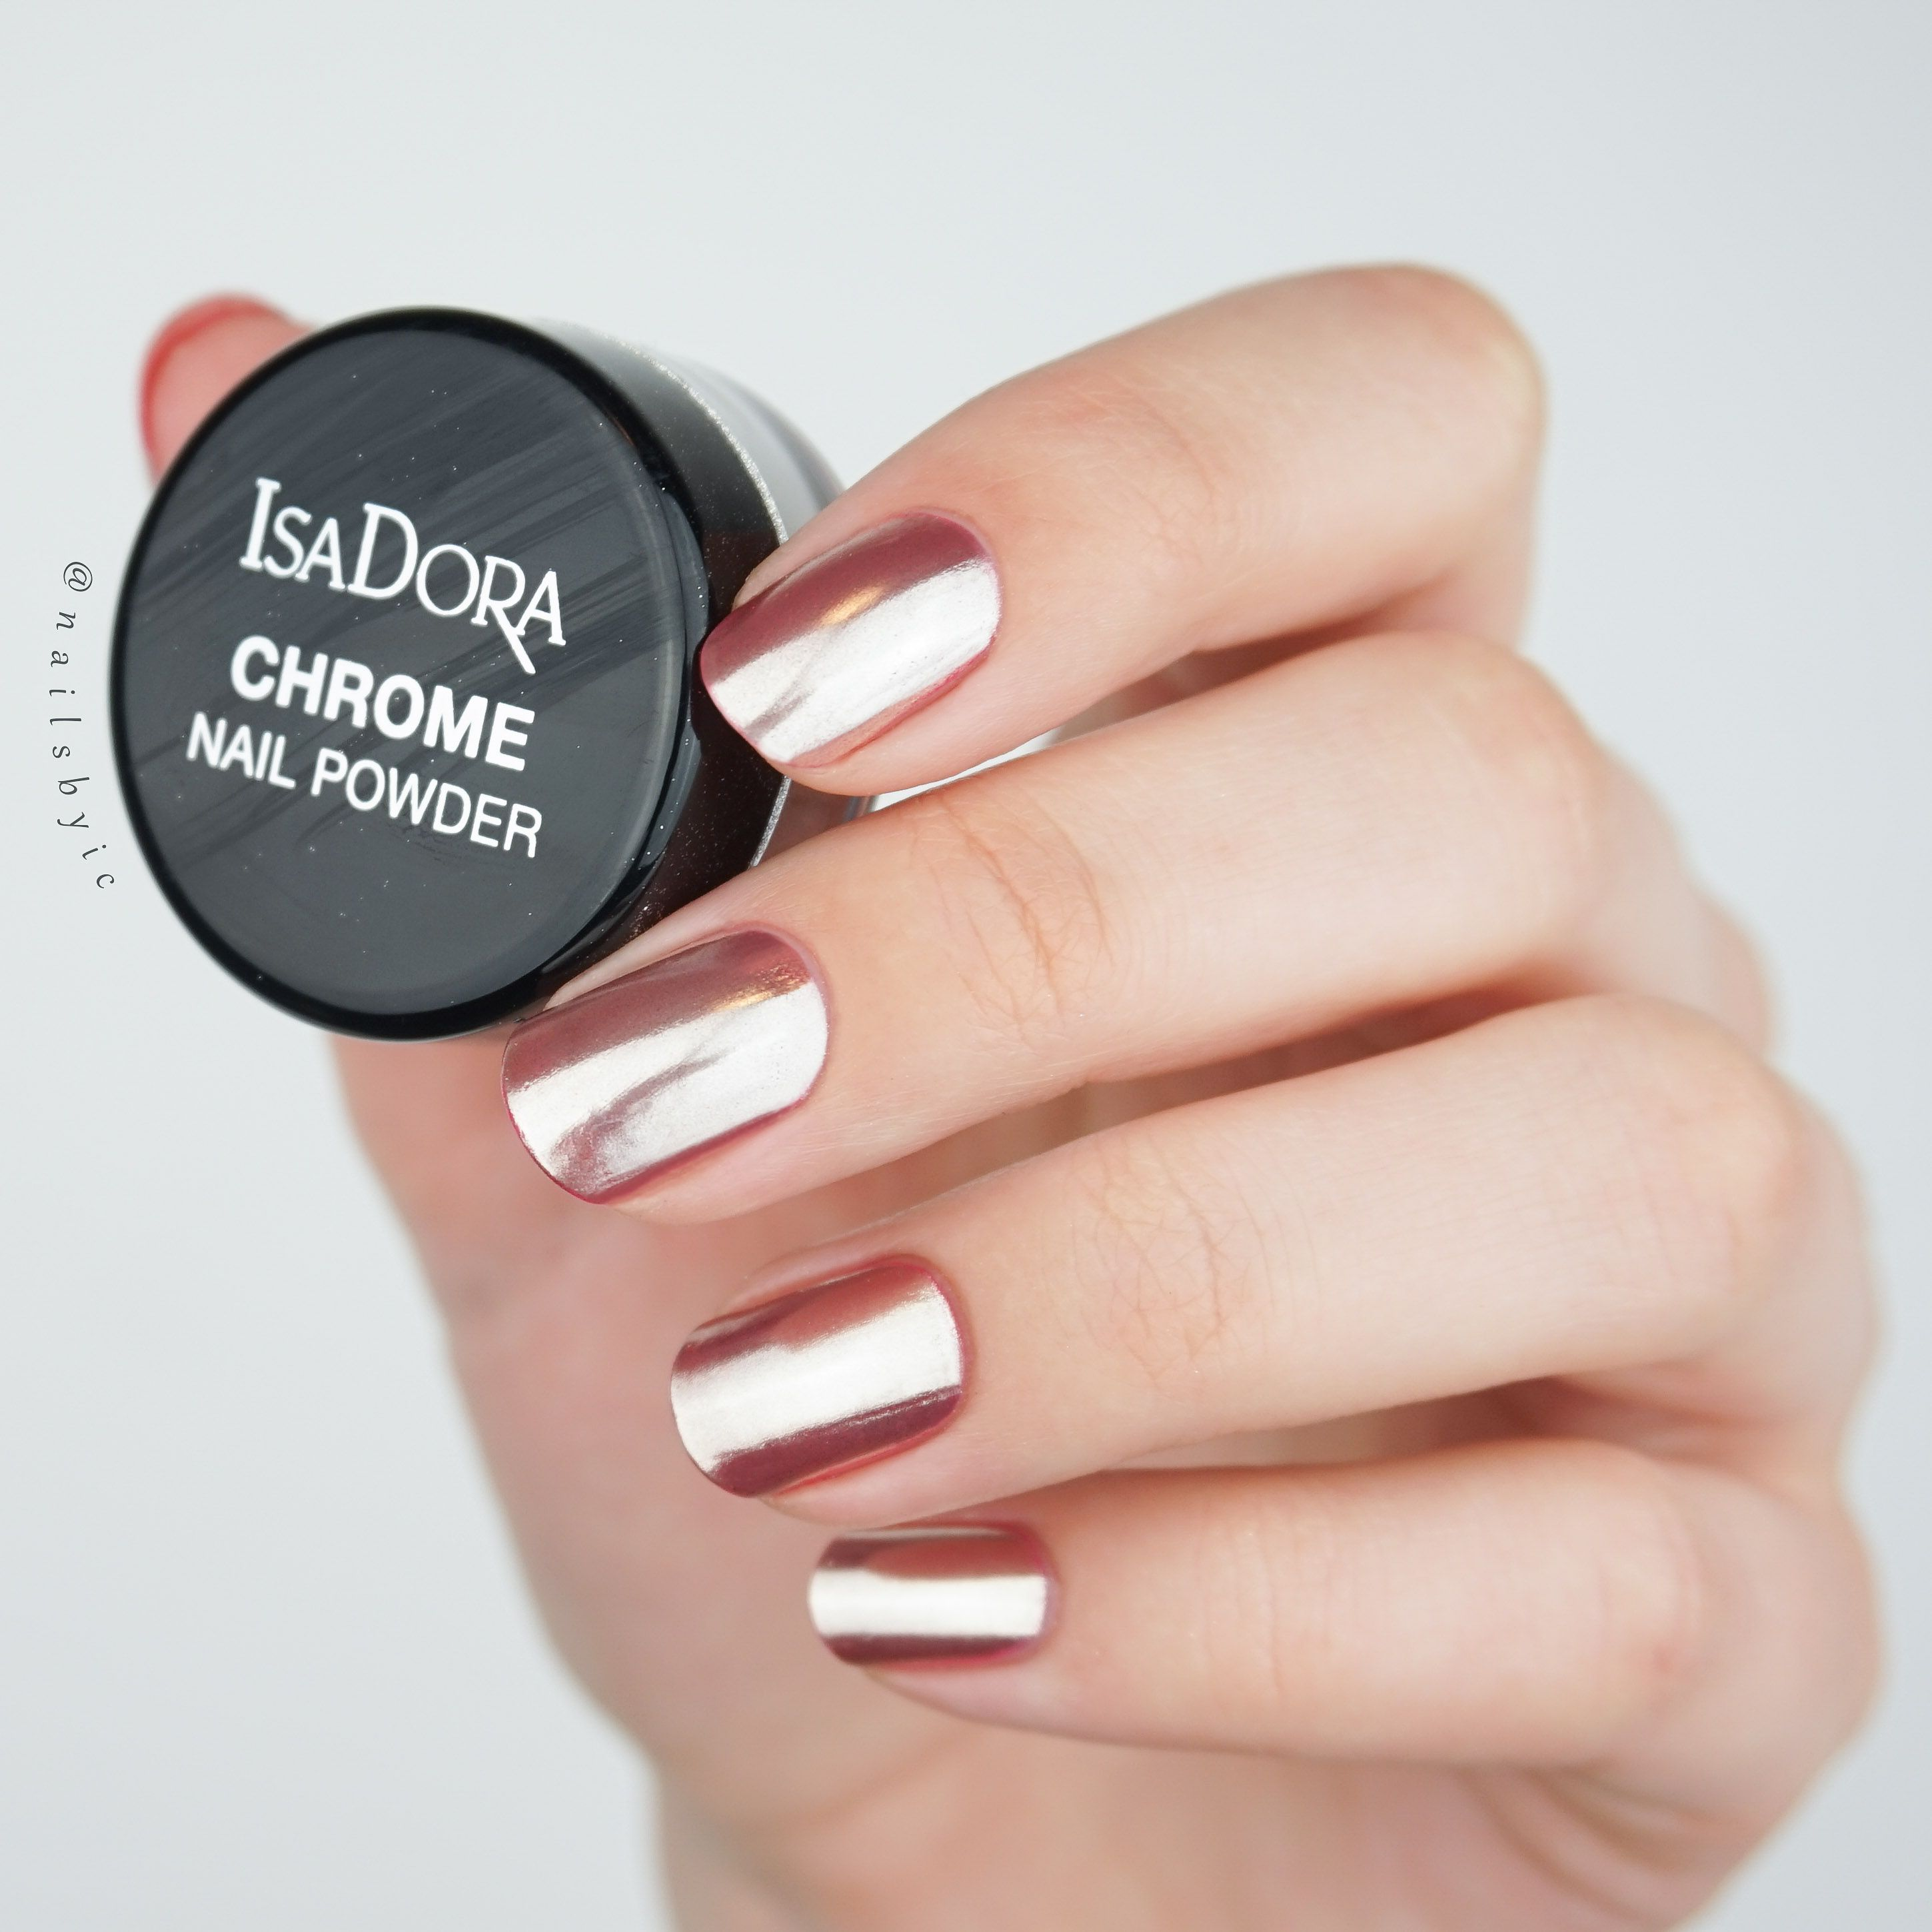 Isadora - Chrome Nail Powder | Nail art | Pinterest | Chrome nails ...